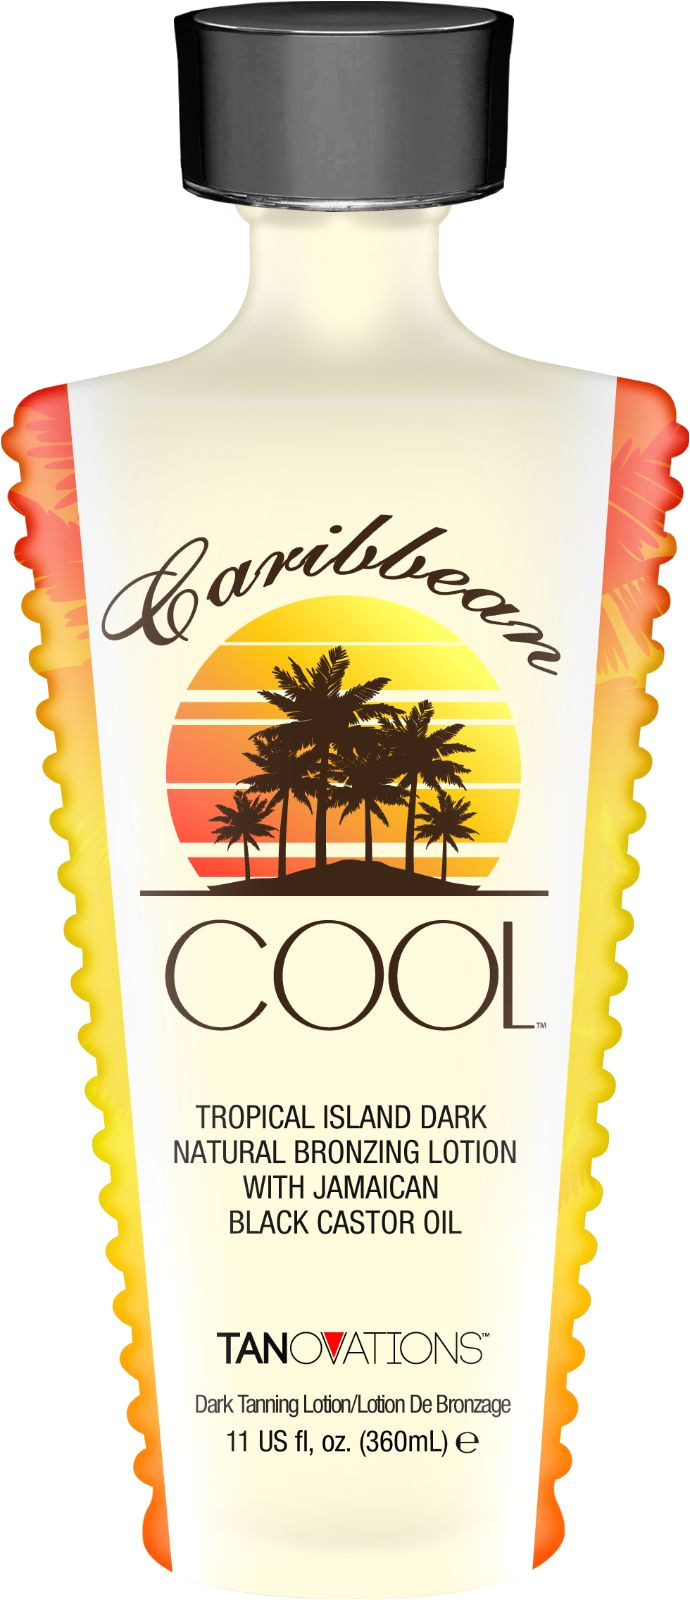 tanning lotion caribbean cool natural bronzer 11oz ed hardy u pick 1 6